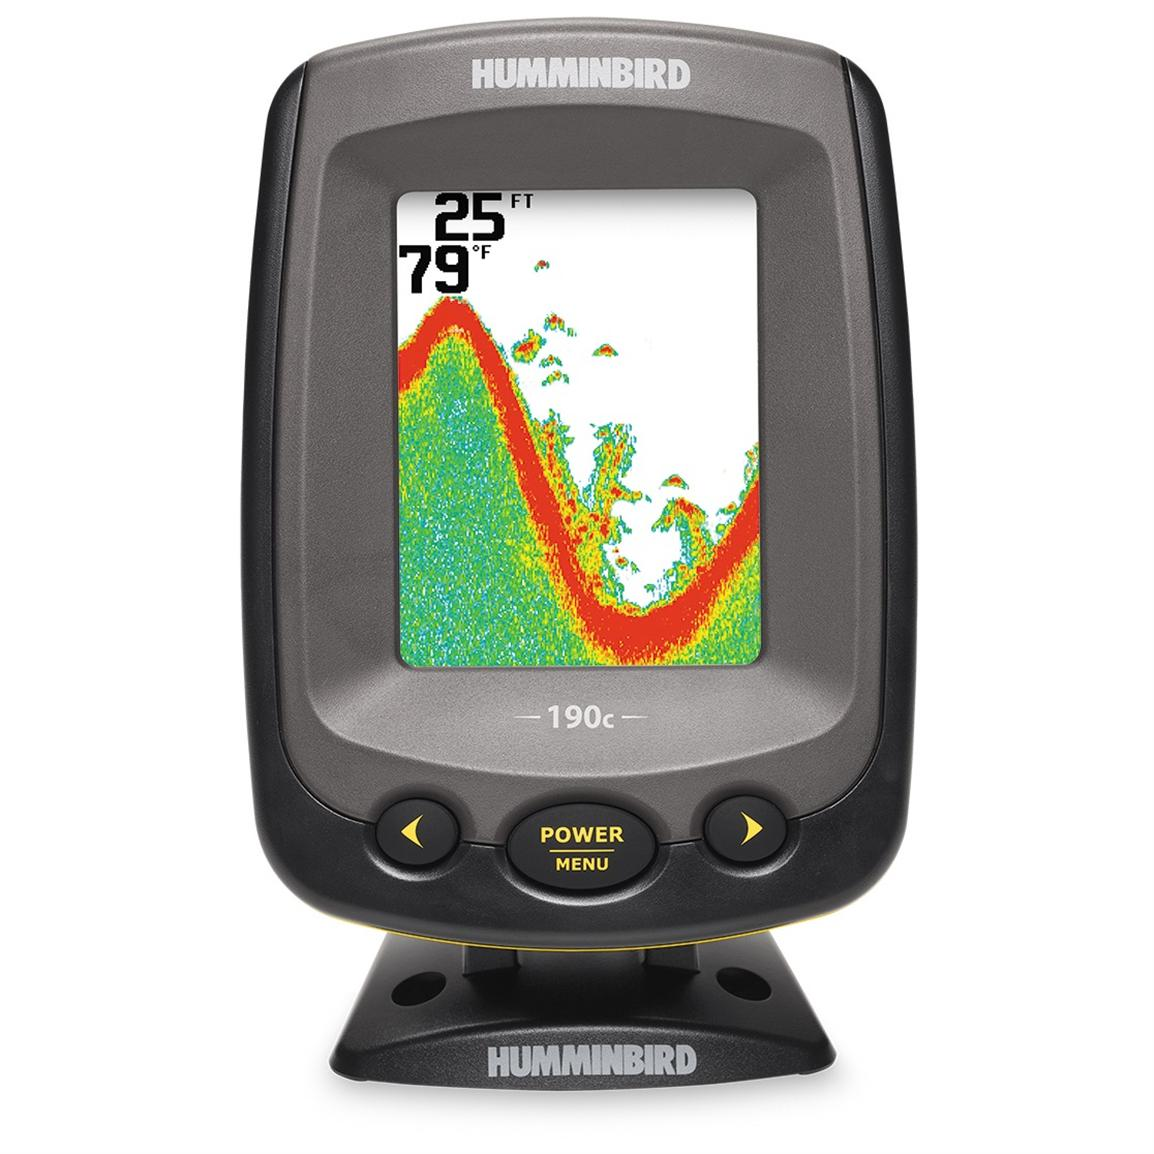 Humminbird piranhamax 190c fishfinder 158100 fish for Piranha fish finder